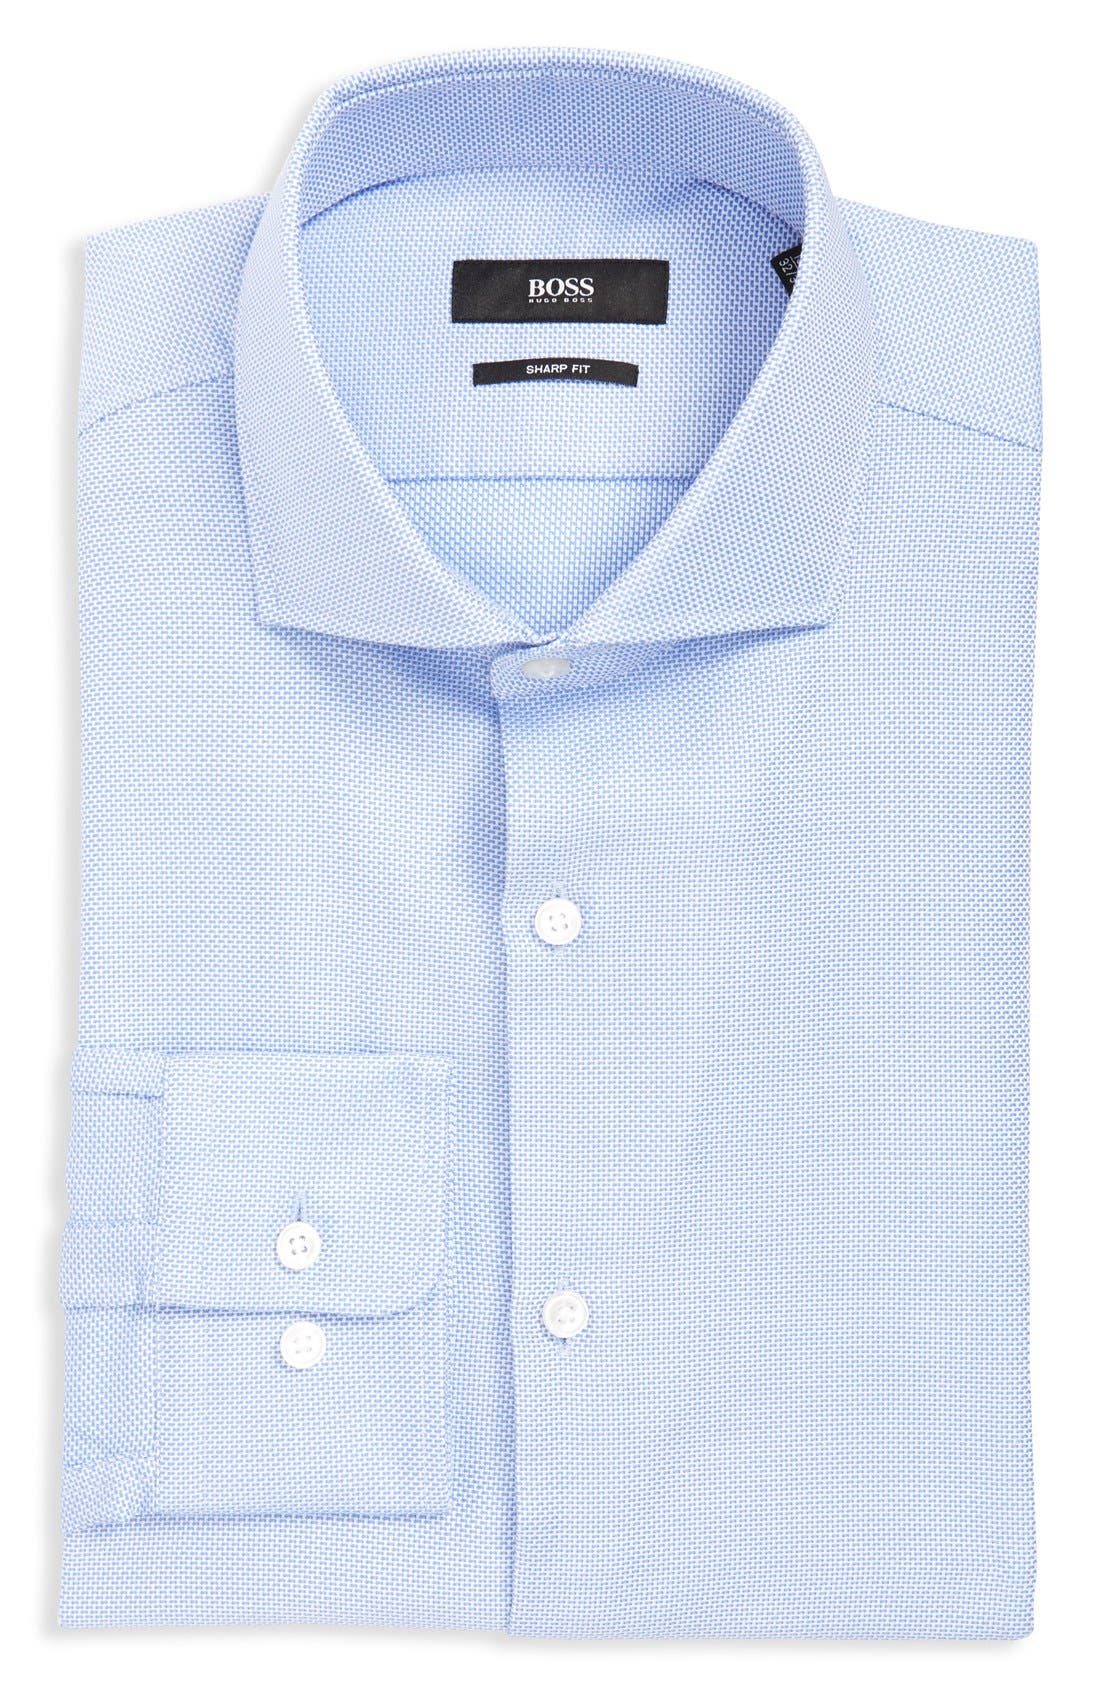 BOSS Sharp Fit Dress Shirt